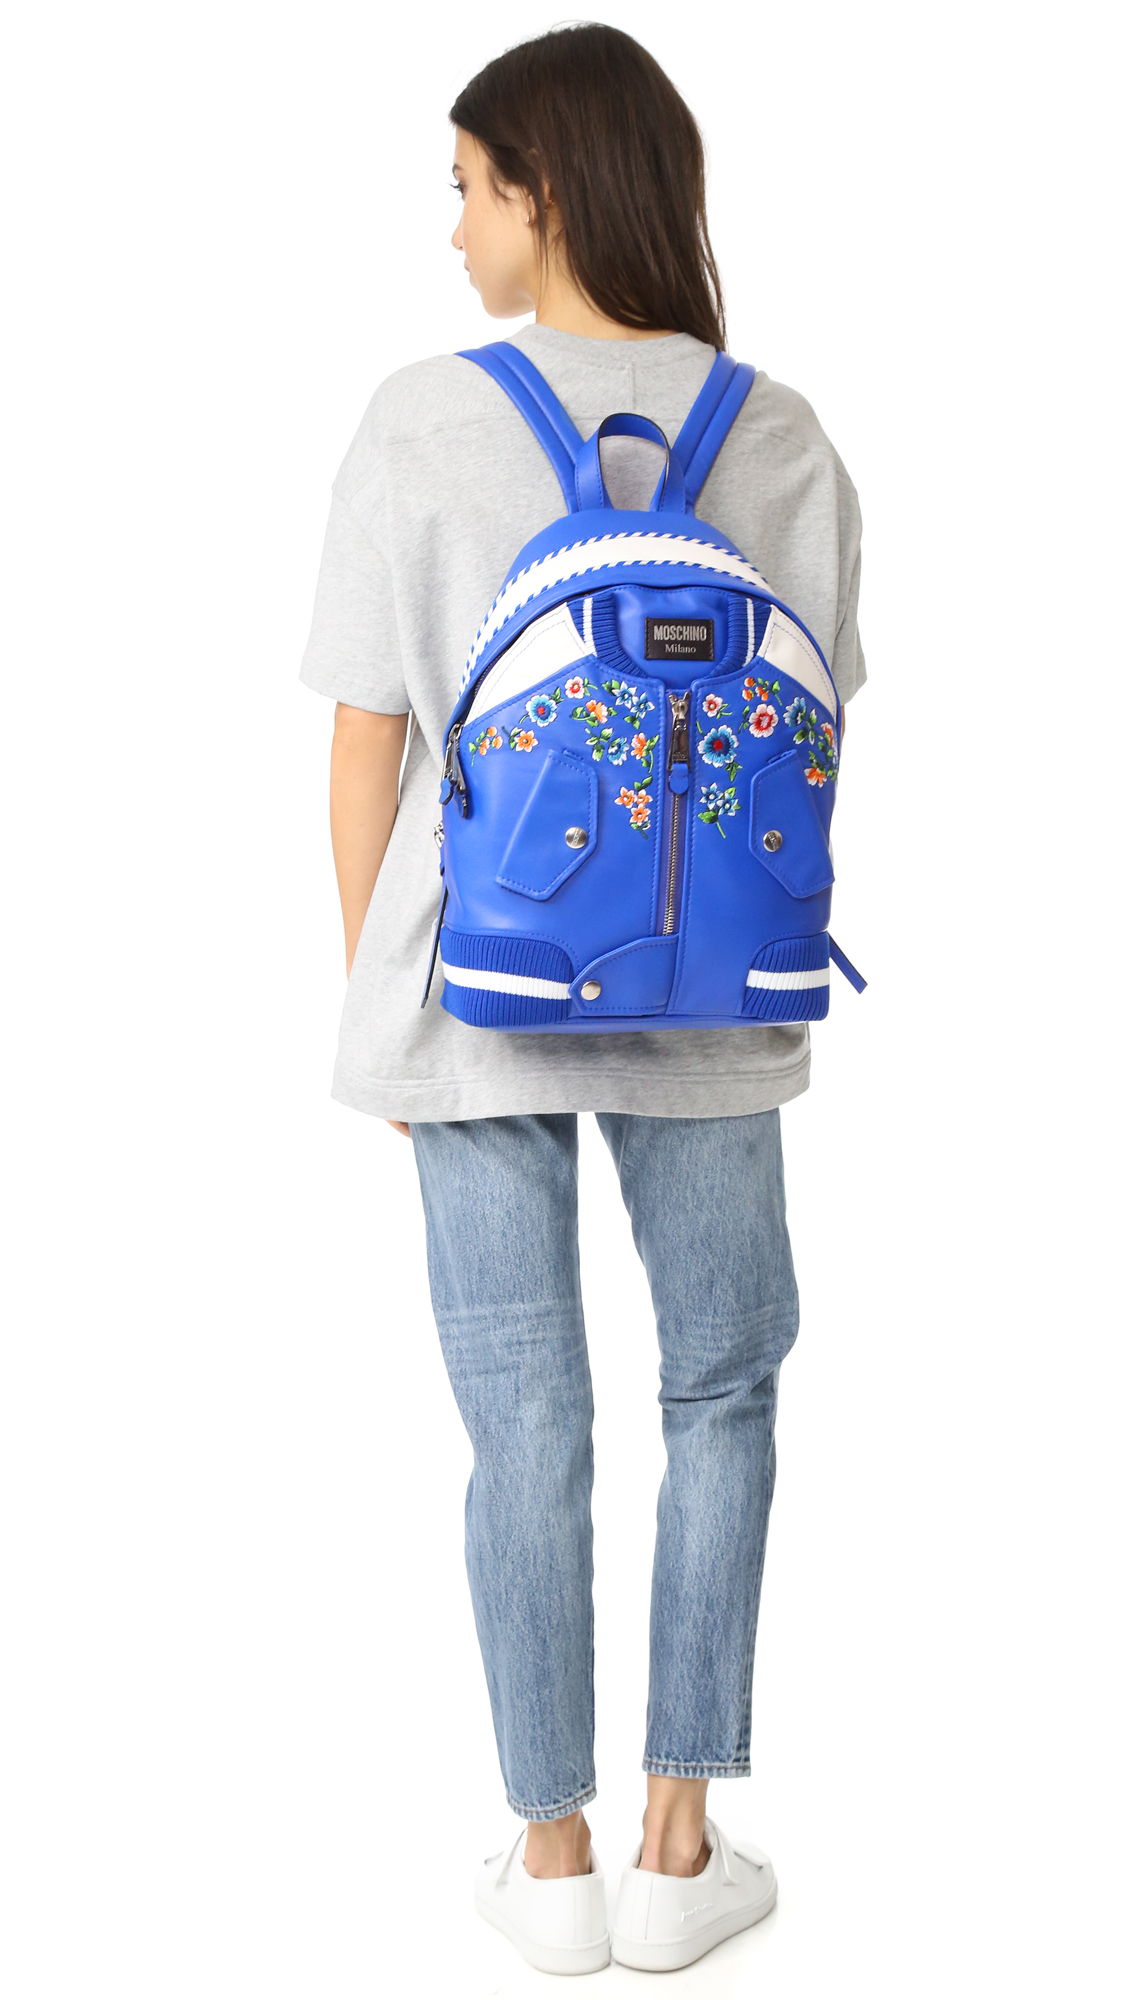 eaedcc510da4 Moschino Bomber Backpack